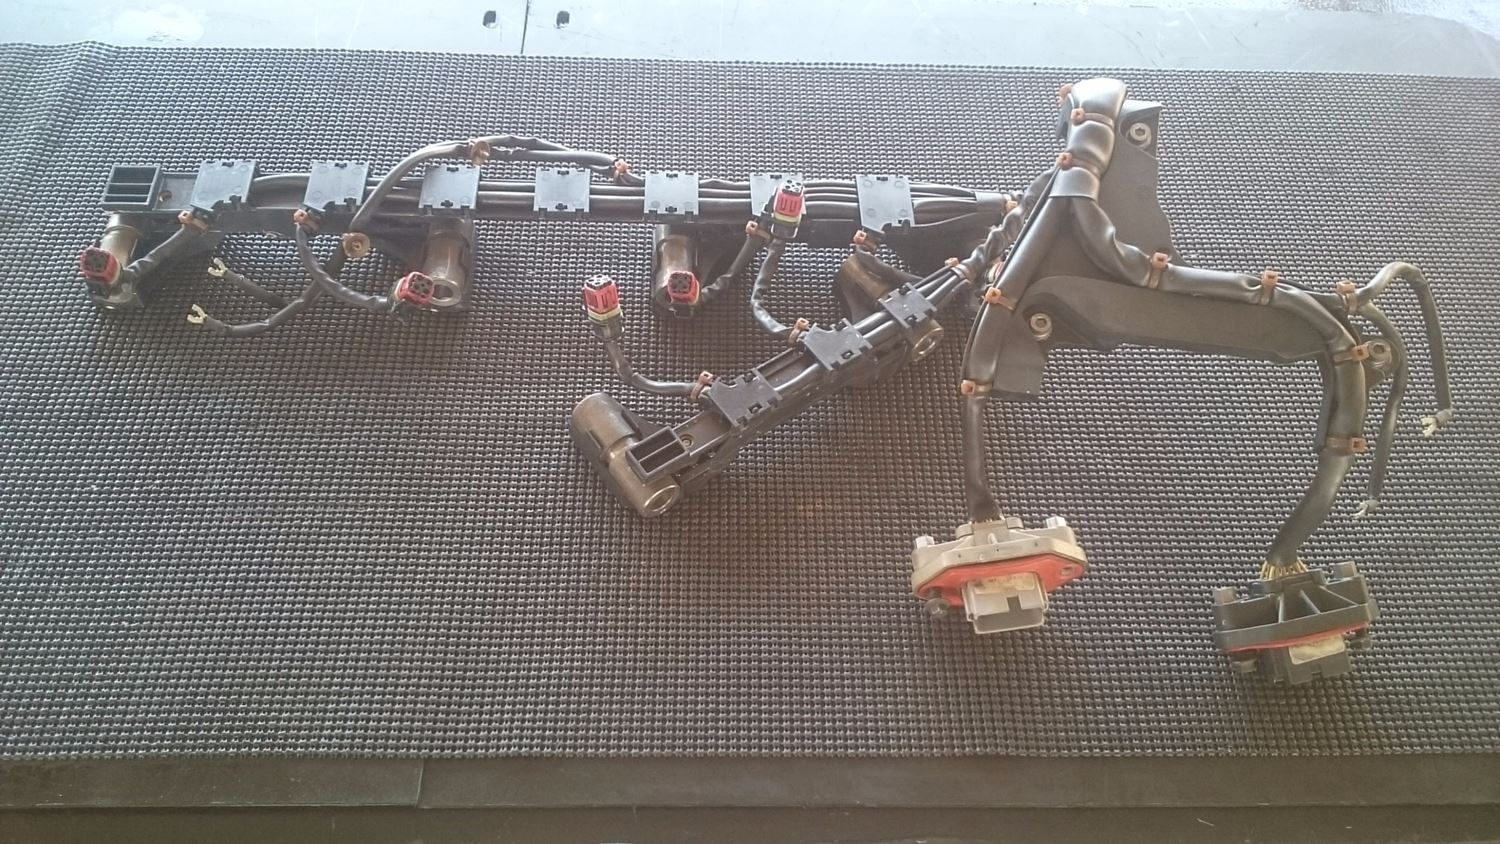 Detroit Series 60 14.0L DDEC V Wiring Harnesses 80946178 yIaKS9ZQJyio_f?h=60&w=100&crop=auto wiring harnesses new and used parts american truck chrome 60 series detroit engine ecm harness wiring at arjmand.co